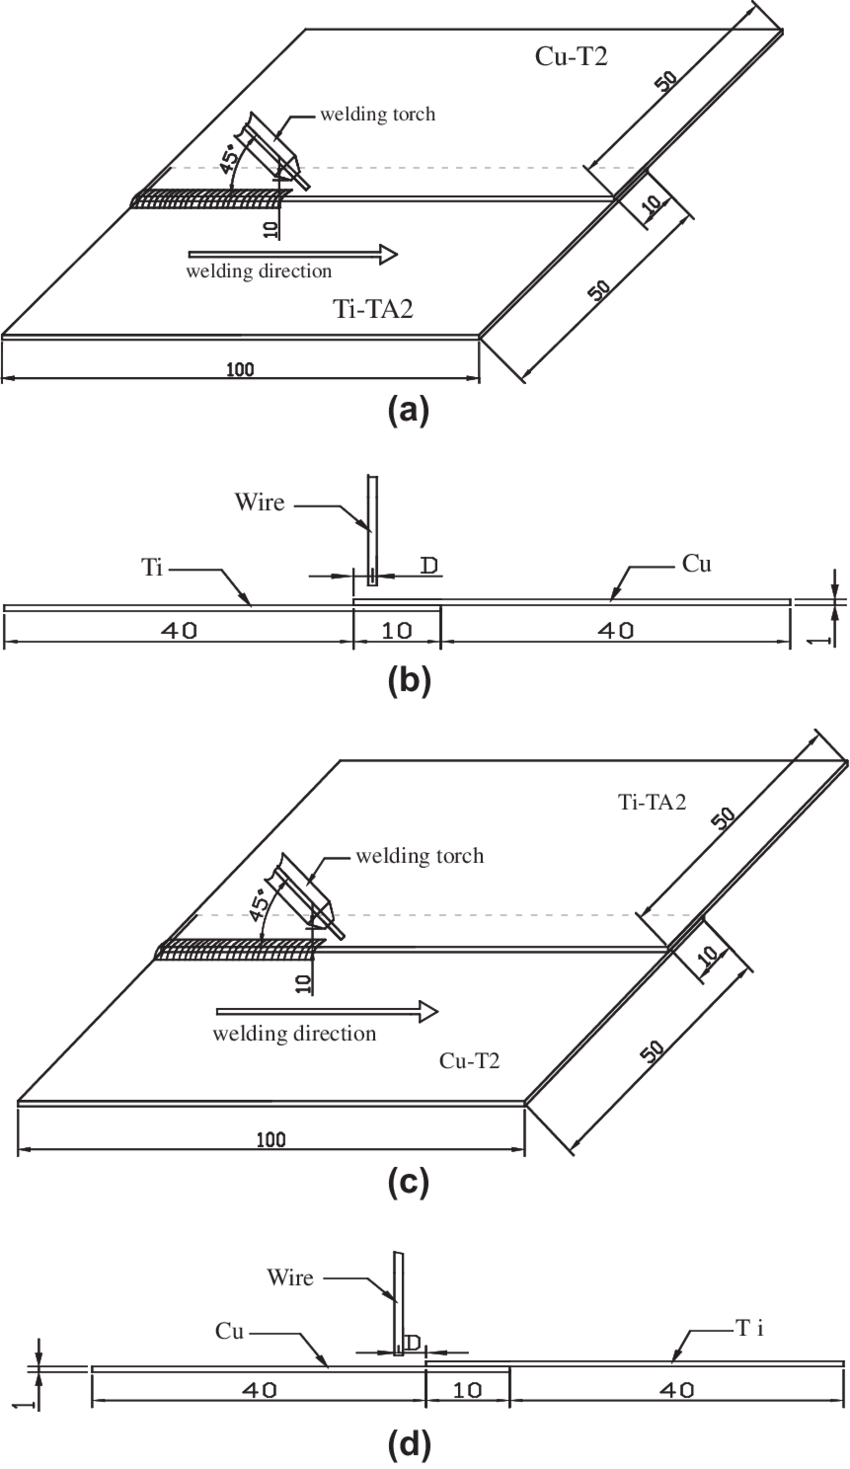 hight resolution of schematic diagrams of cmt welding of titanium ta2 and copper t2 sheets dimensions in mm